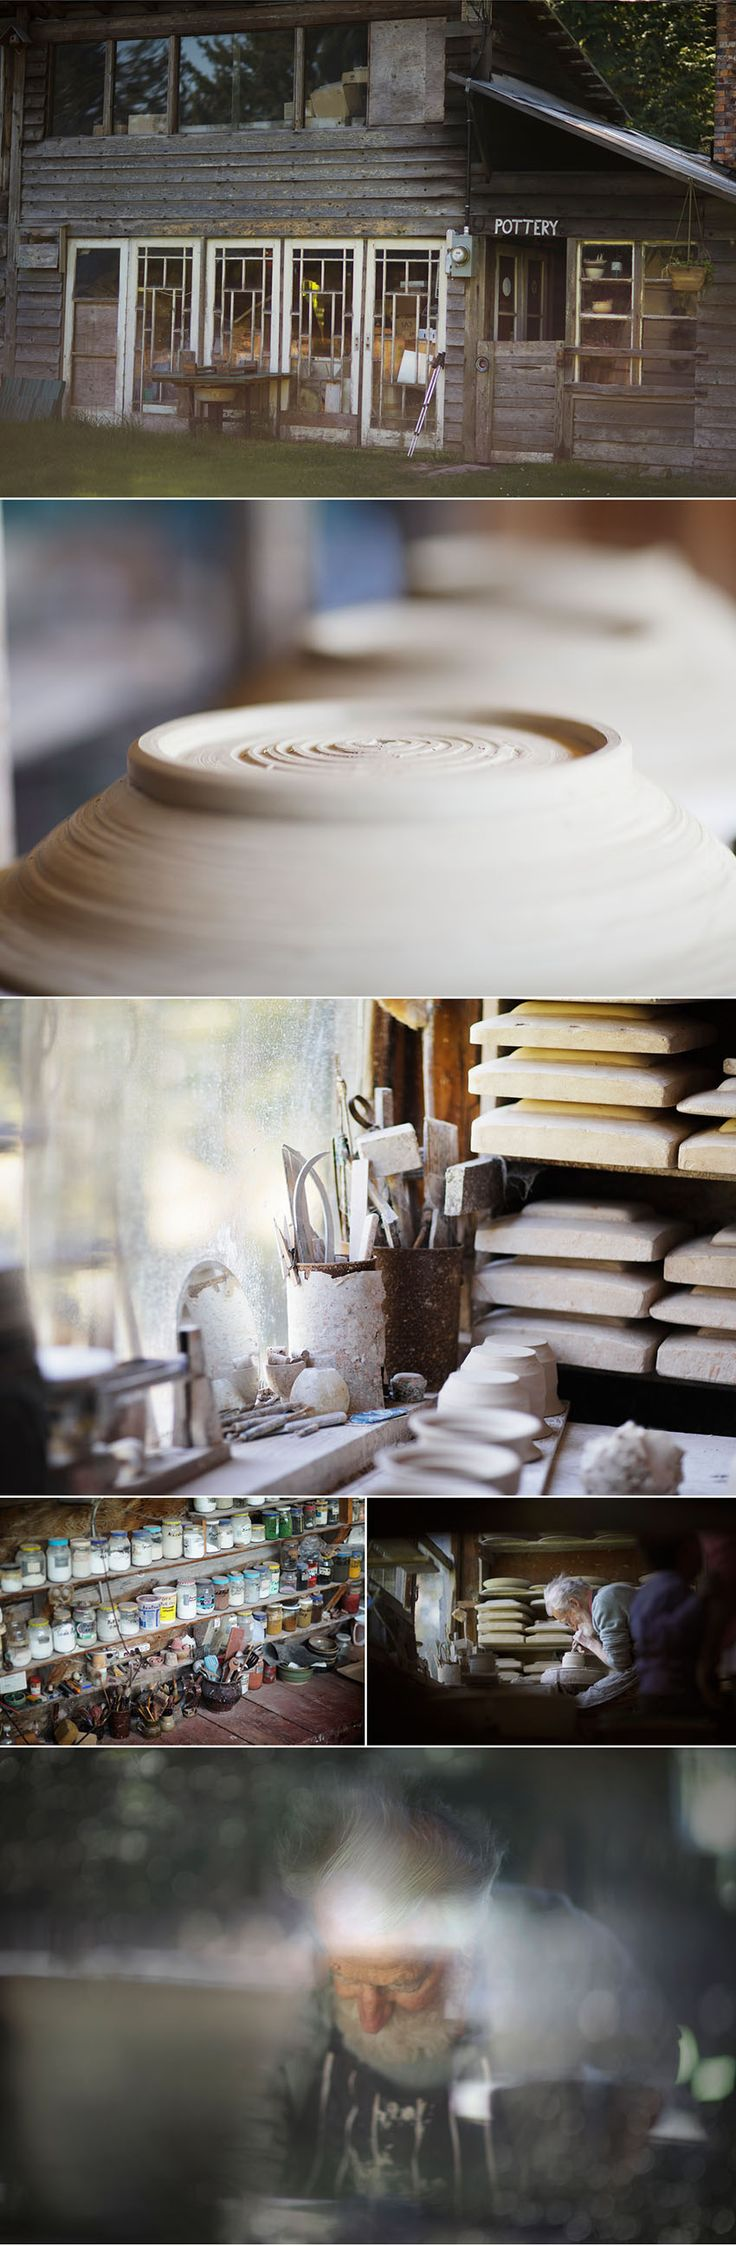 hornby island pottery Pottery Studio {notes} michellewellsphotography.ca